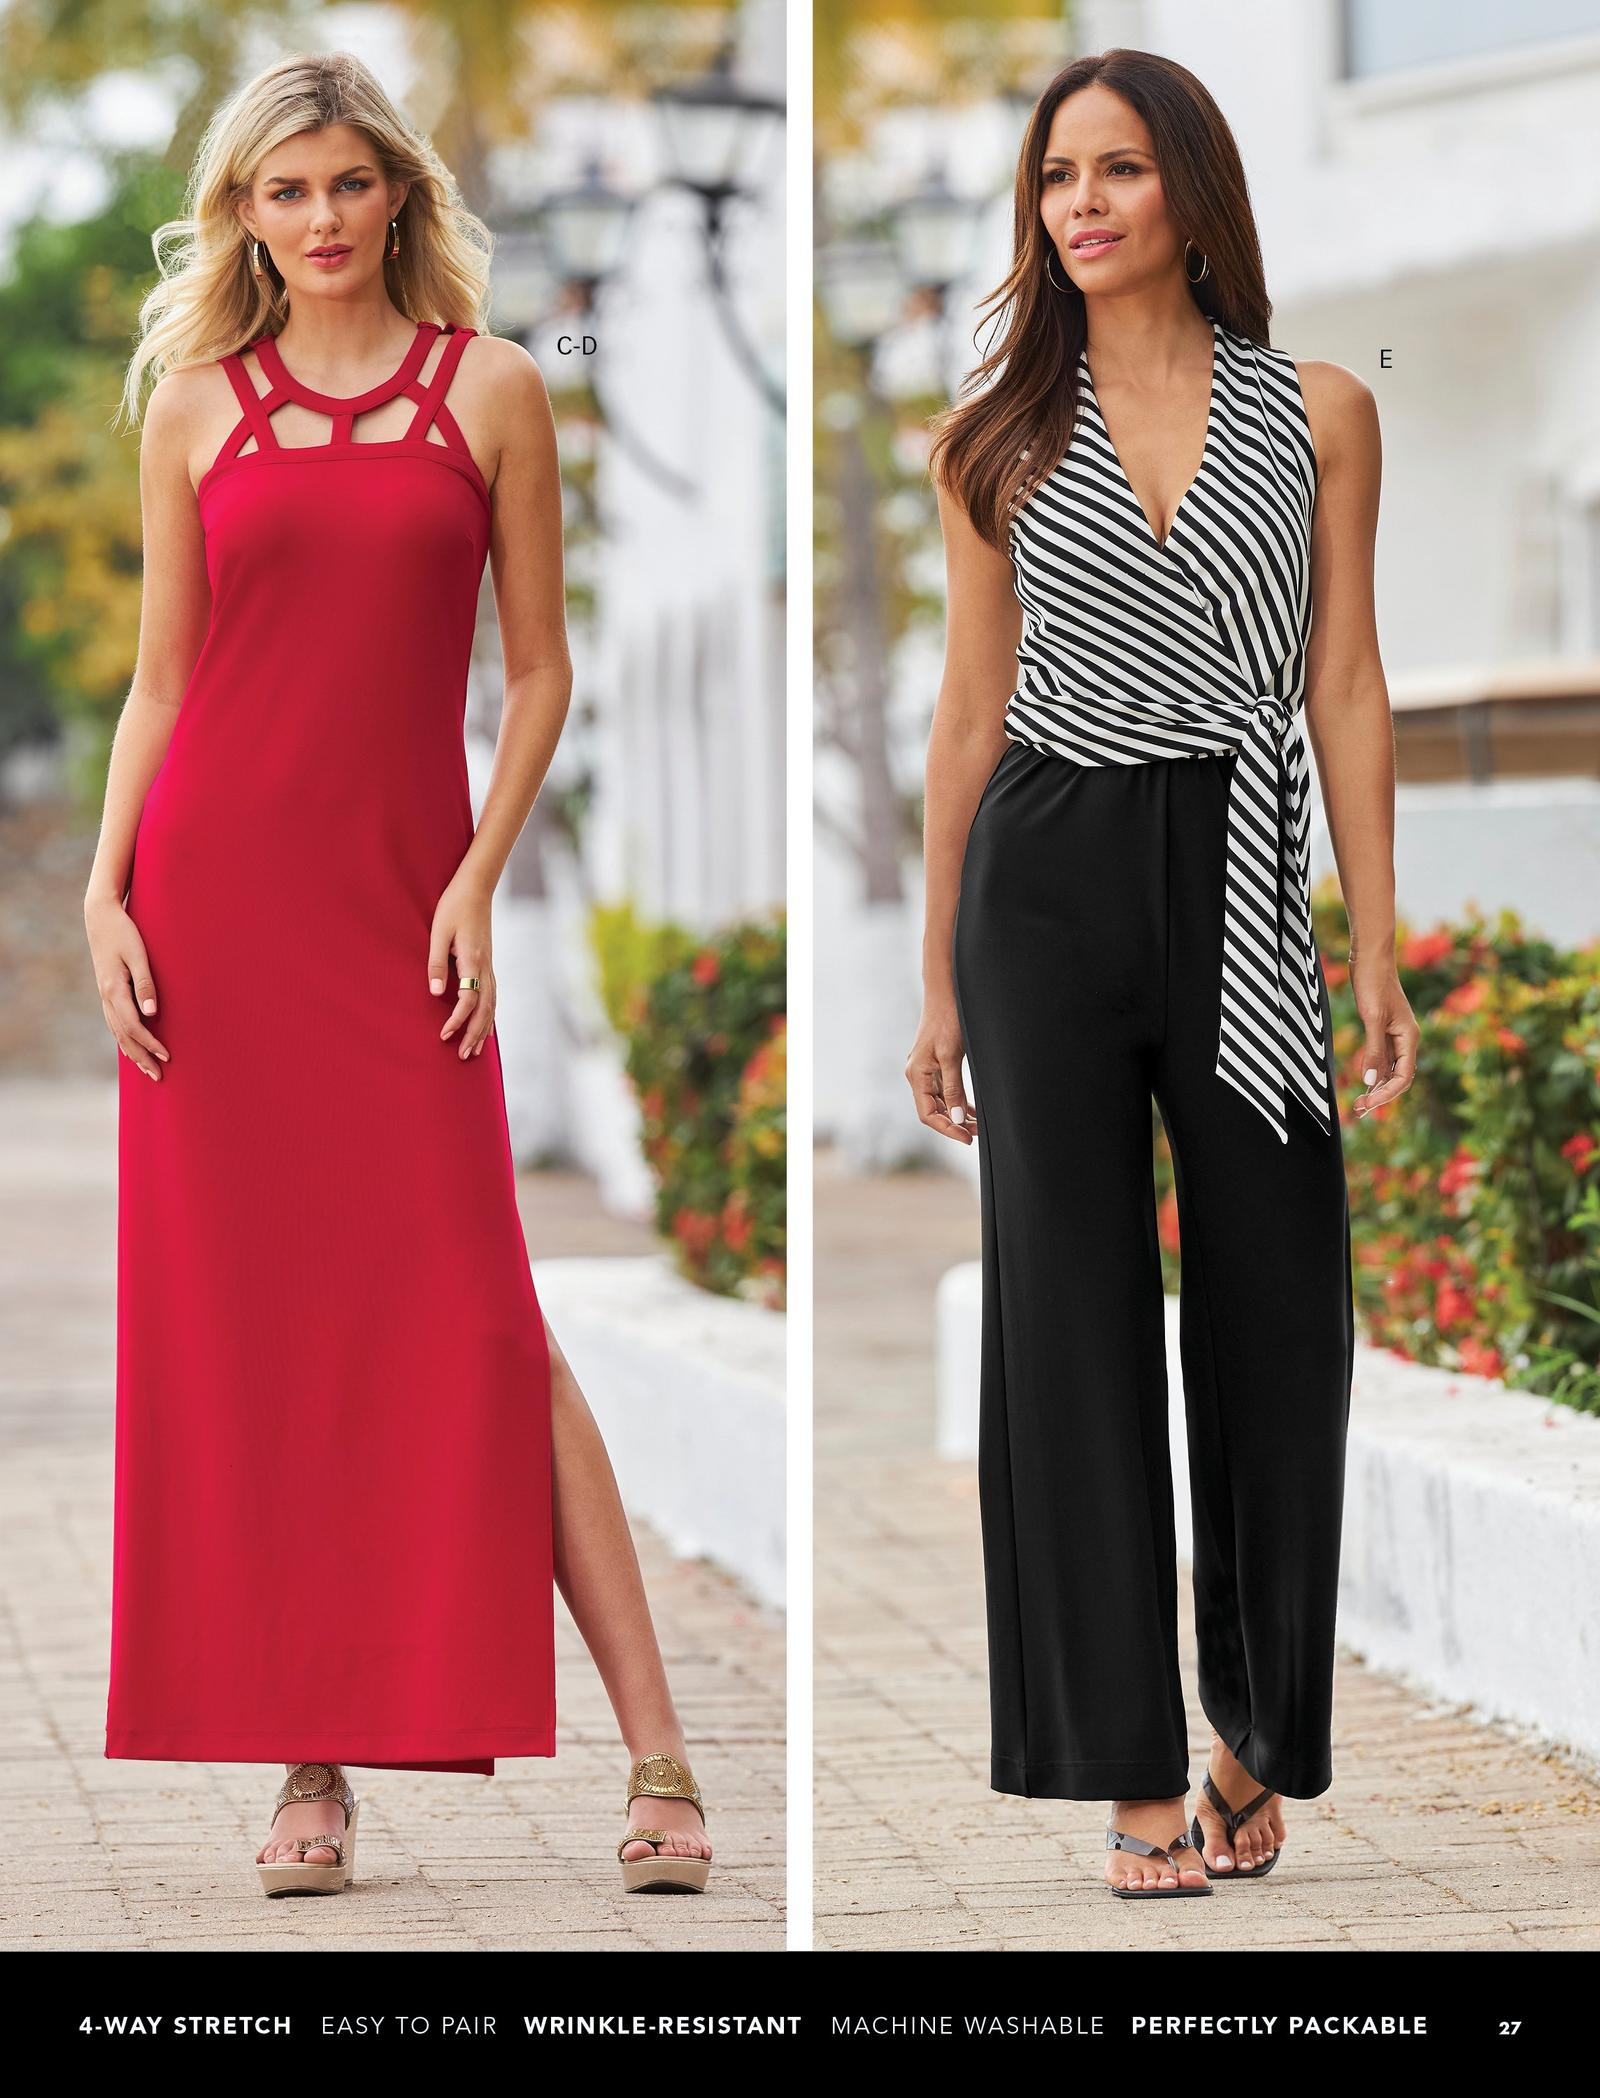 left model wearing a red sleeveless strappy maxi dress and gold wedges. right model wearing a black and white jumpsuit that has striped at the top and solid black at the bottom and black heeled sandals.